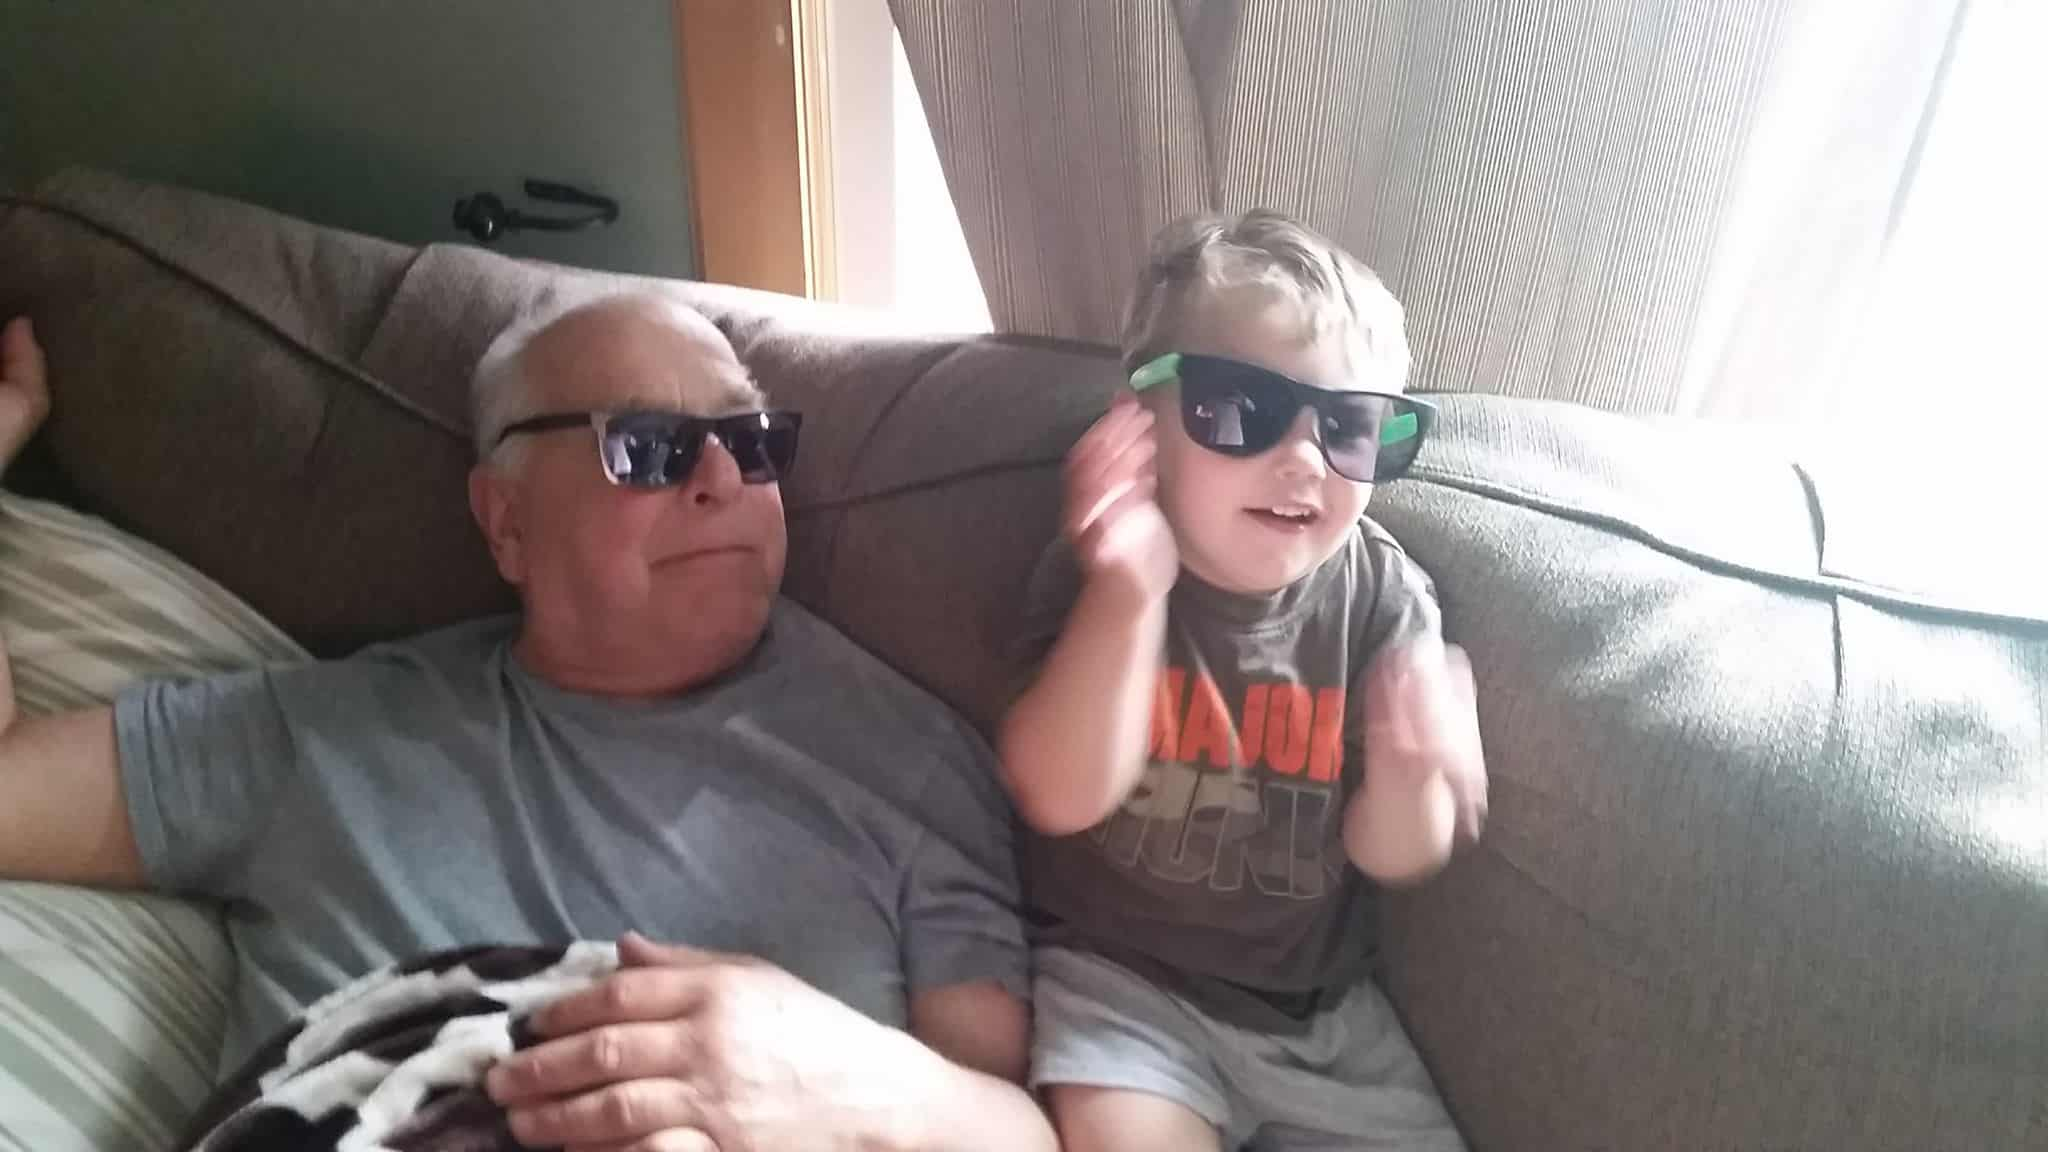 Grandson and great-grandfather wearing matching sunglasses and smiling together.